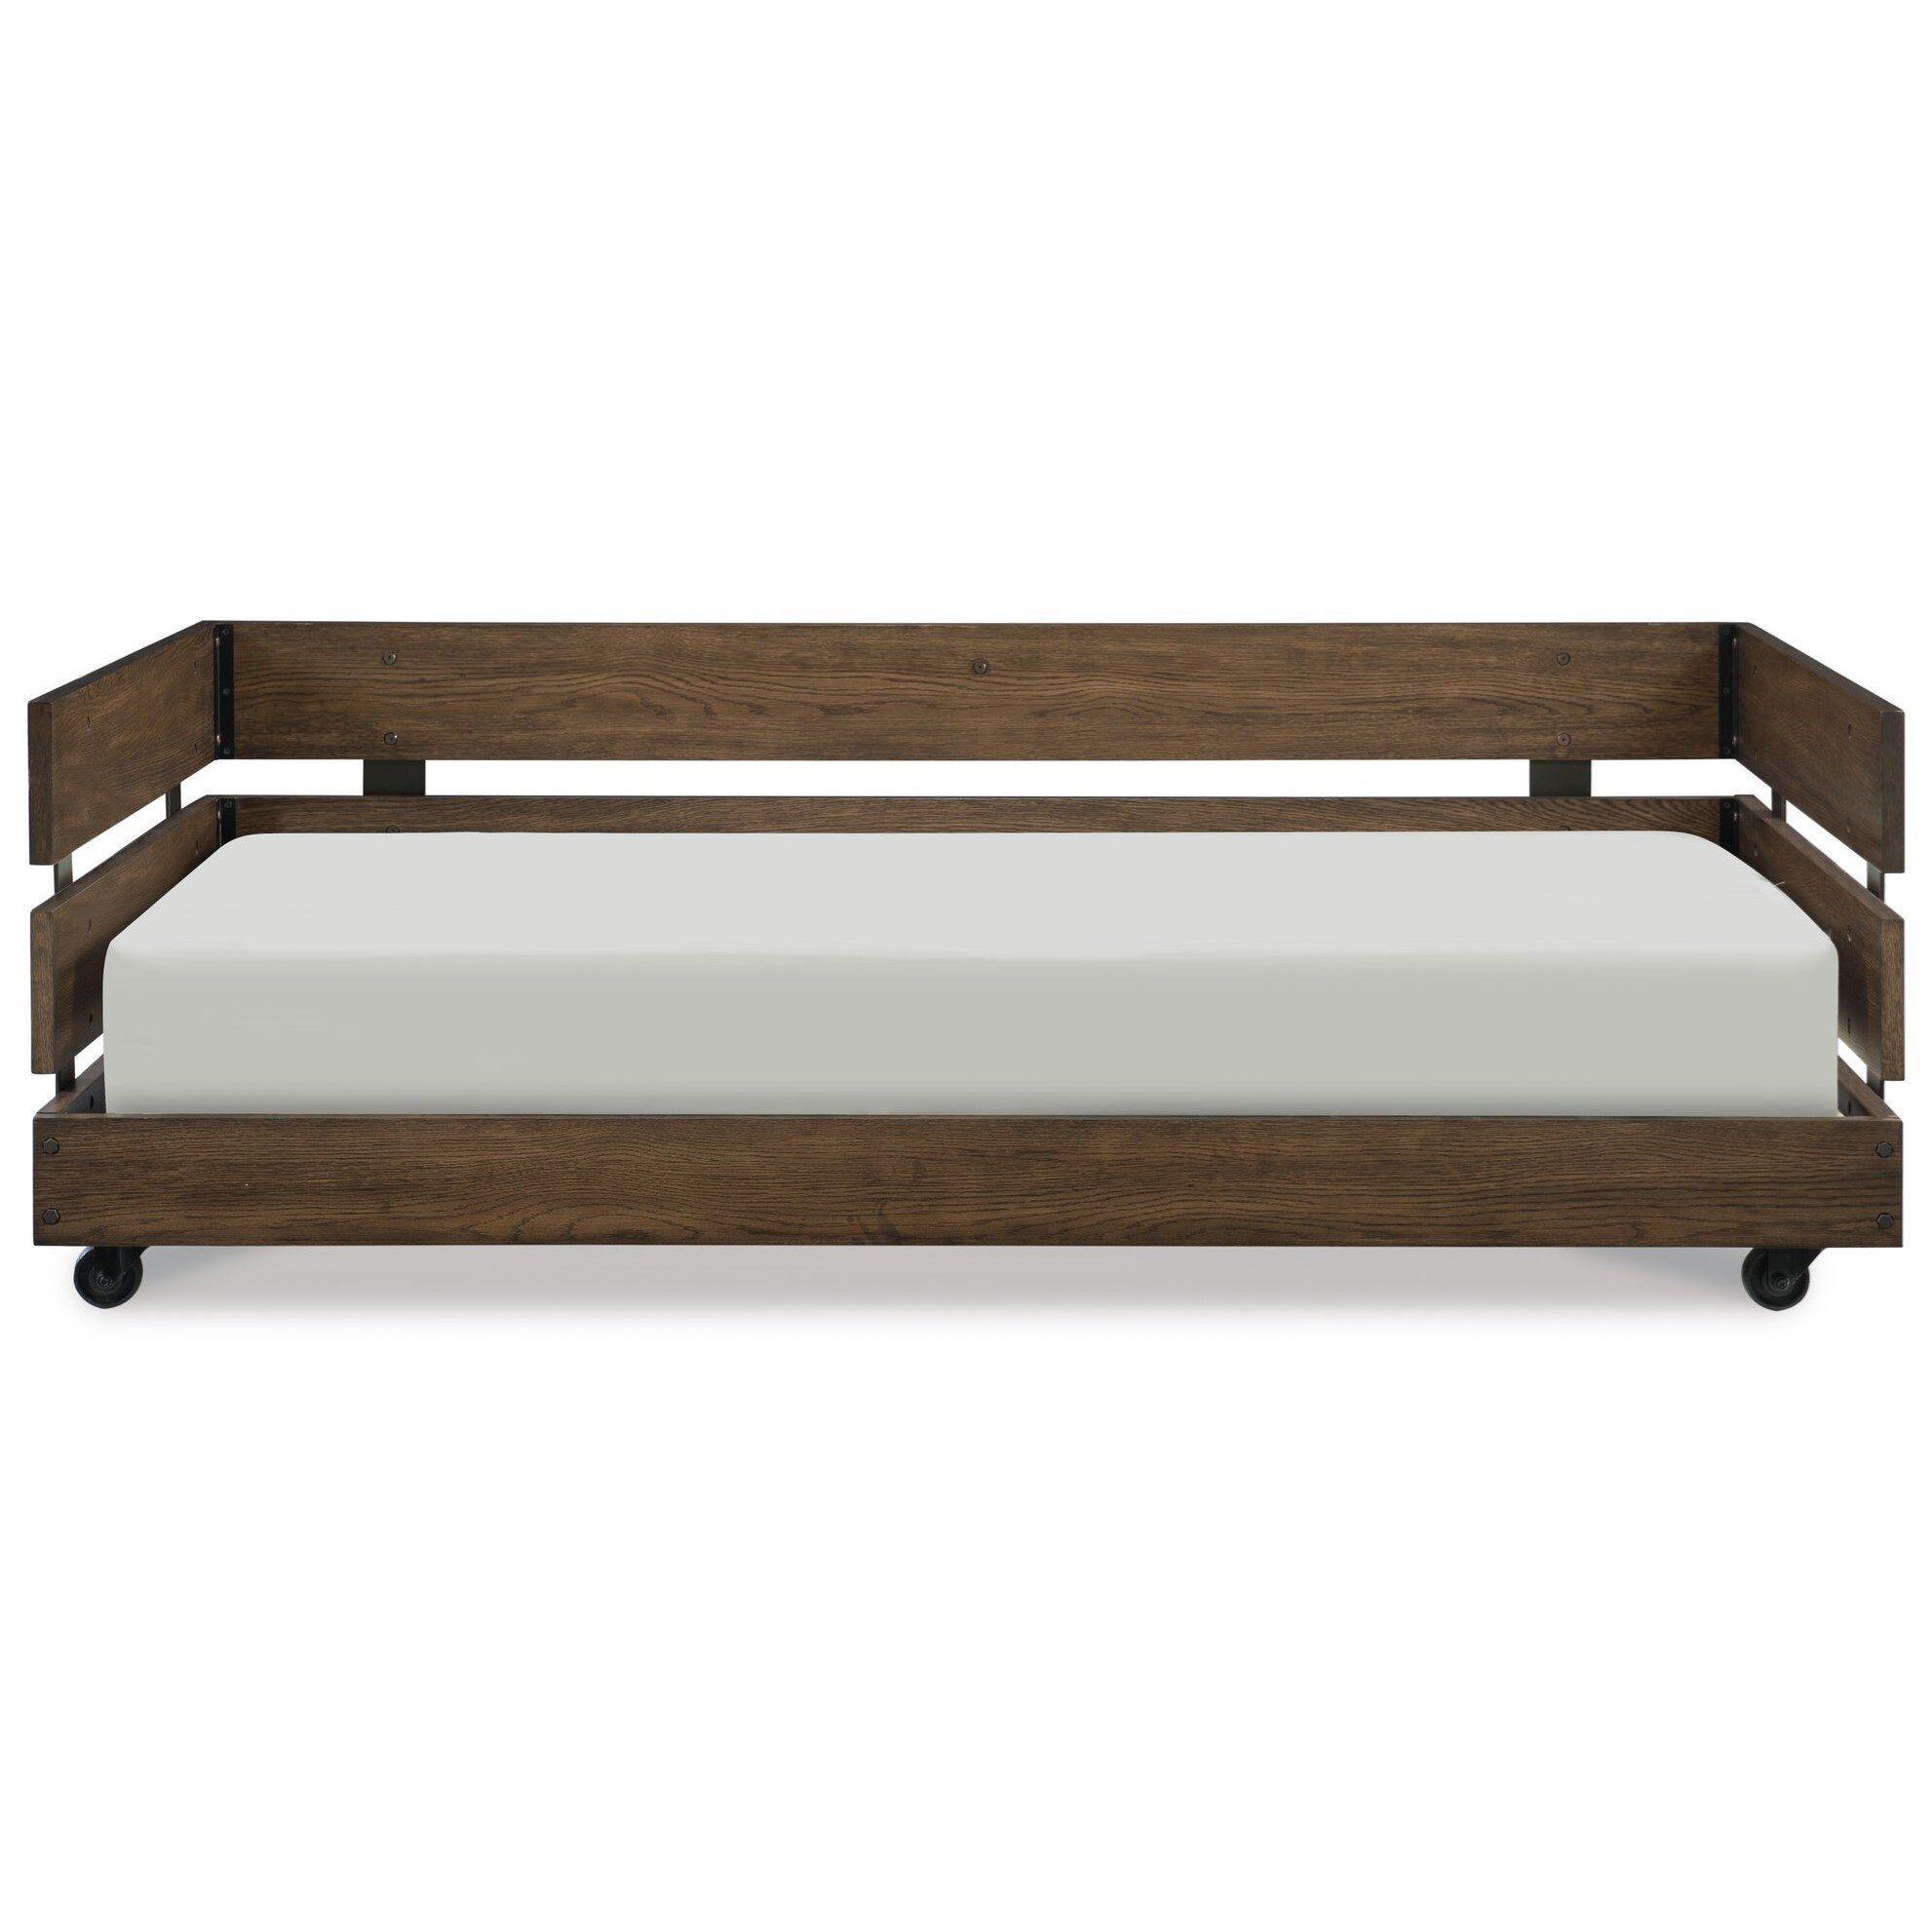 Legacy Classic Kids Sawyers Mill Industrial Twin Slatted Daybed | Howell  Furniture | Daybeds